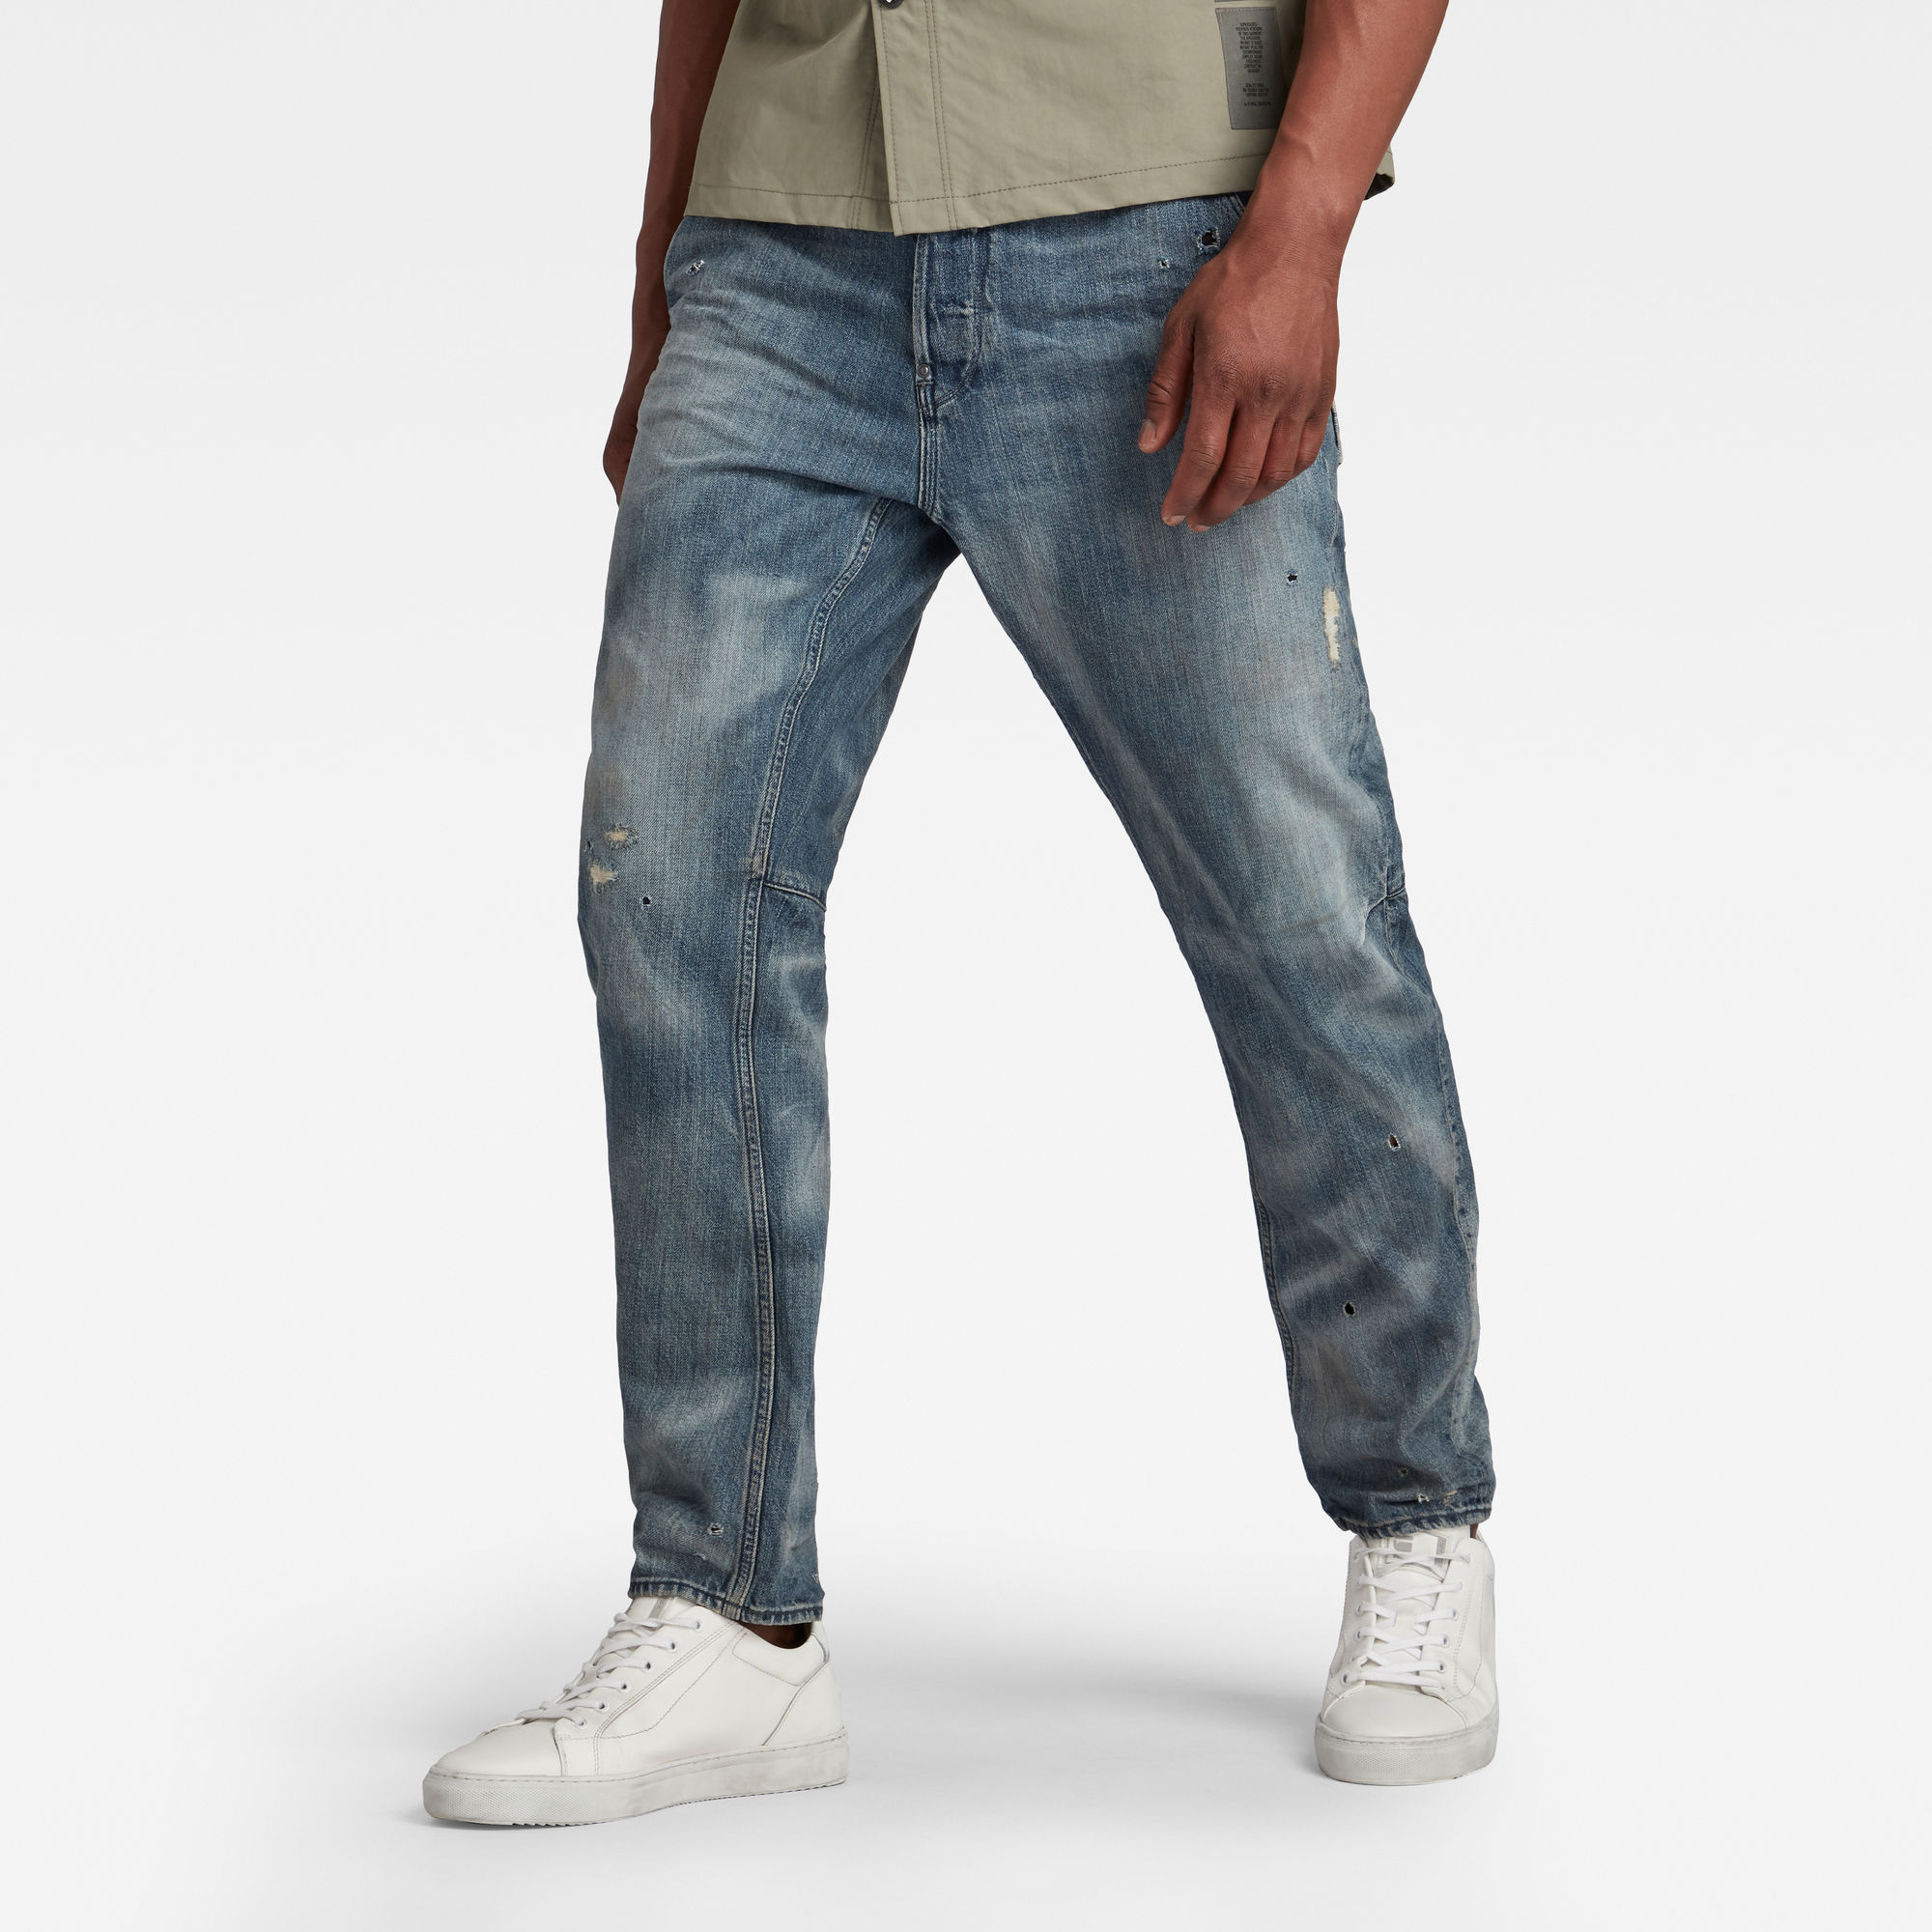 G-Star RAW Heren Grip 3D Relaxed Tapered Jeans Blauw